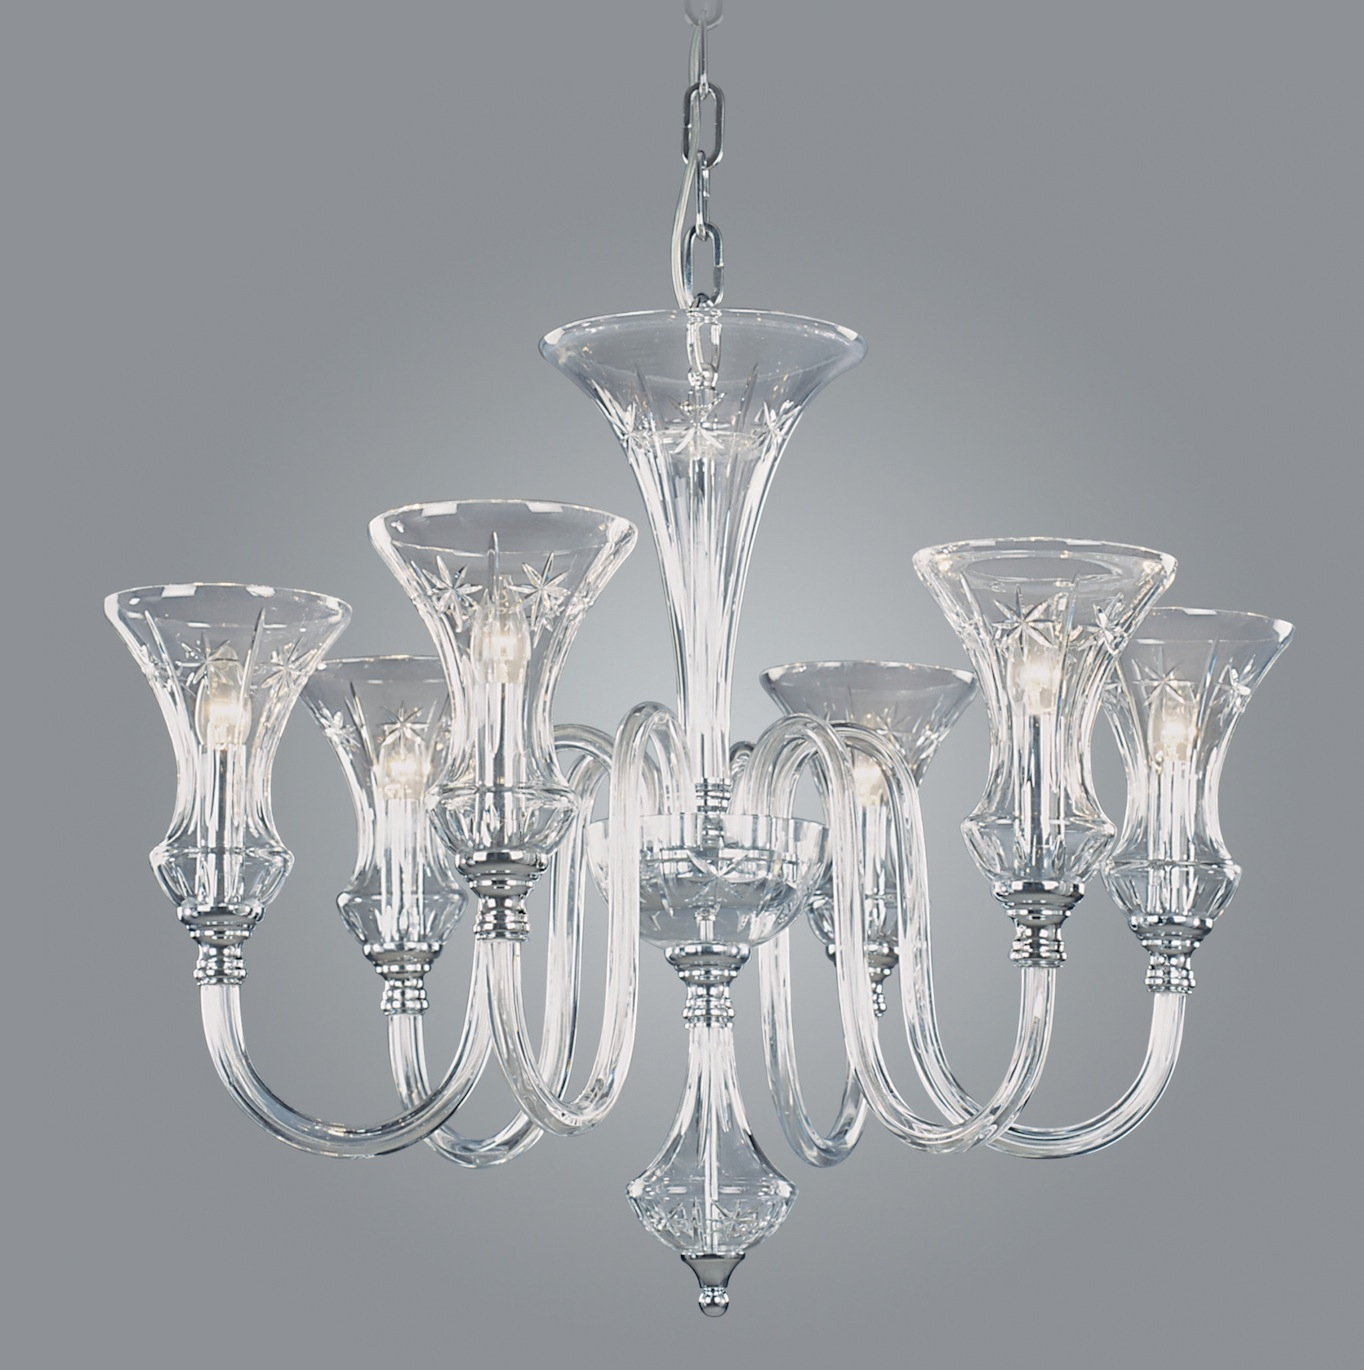 Modern Glass Chandeliers In Small Glass Chandeliers (View 3 of 12)